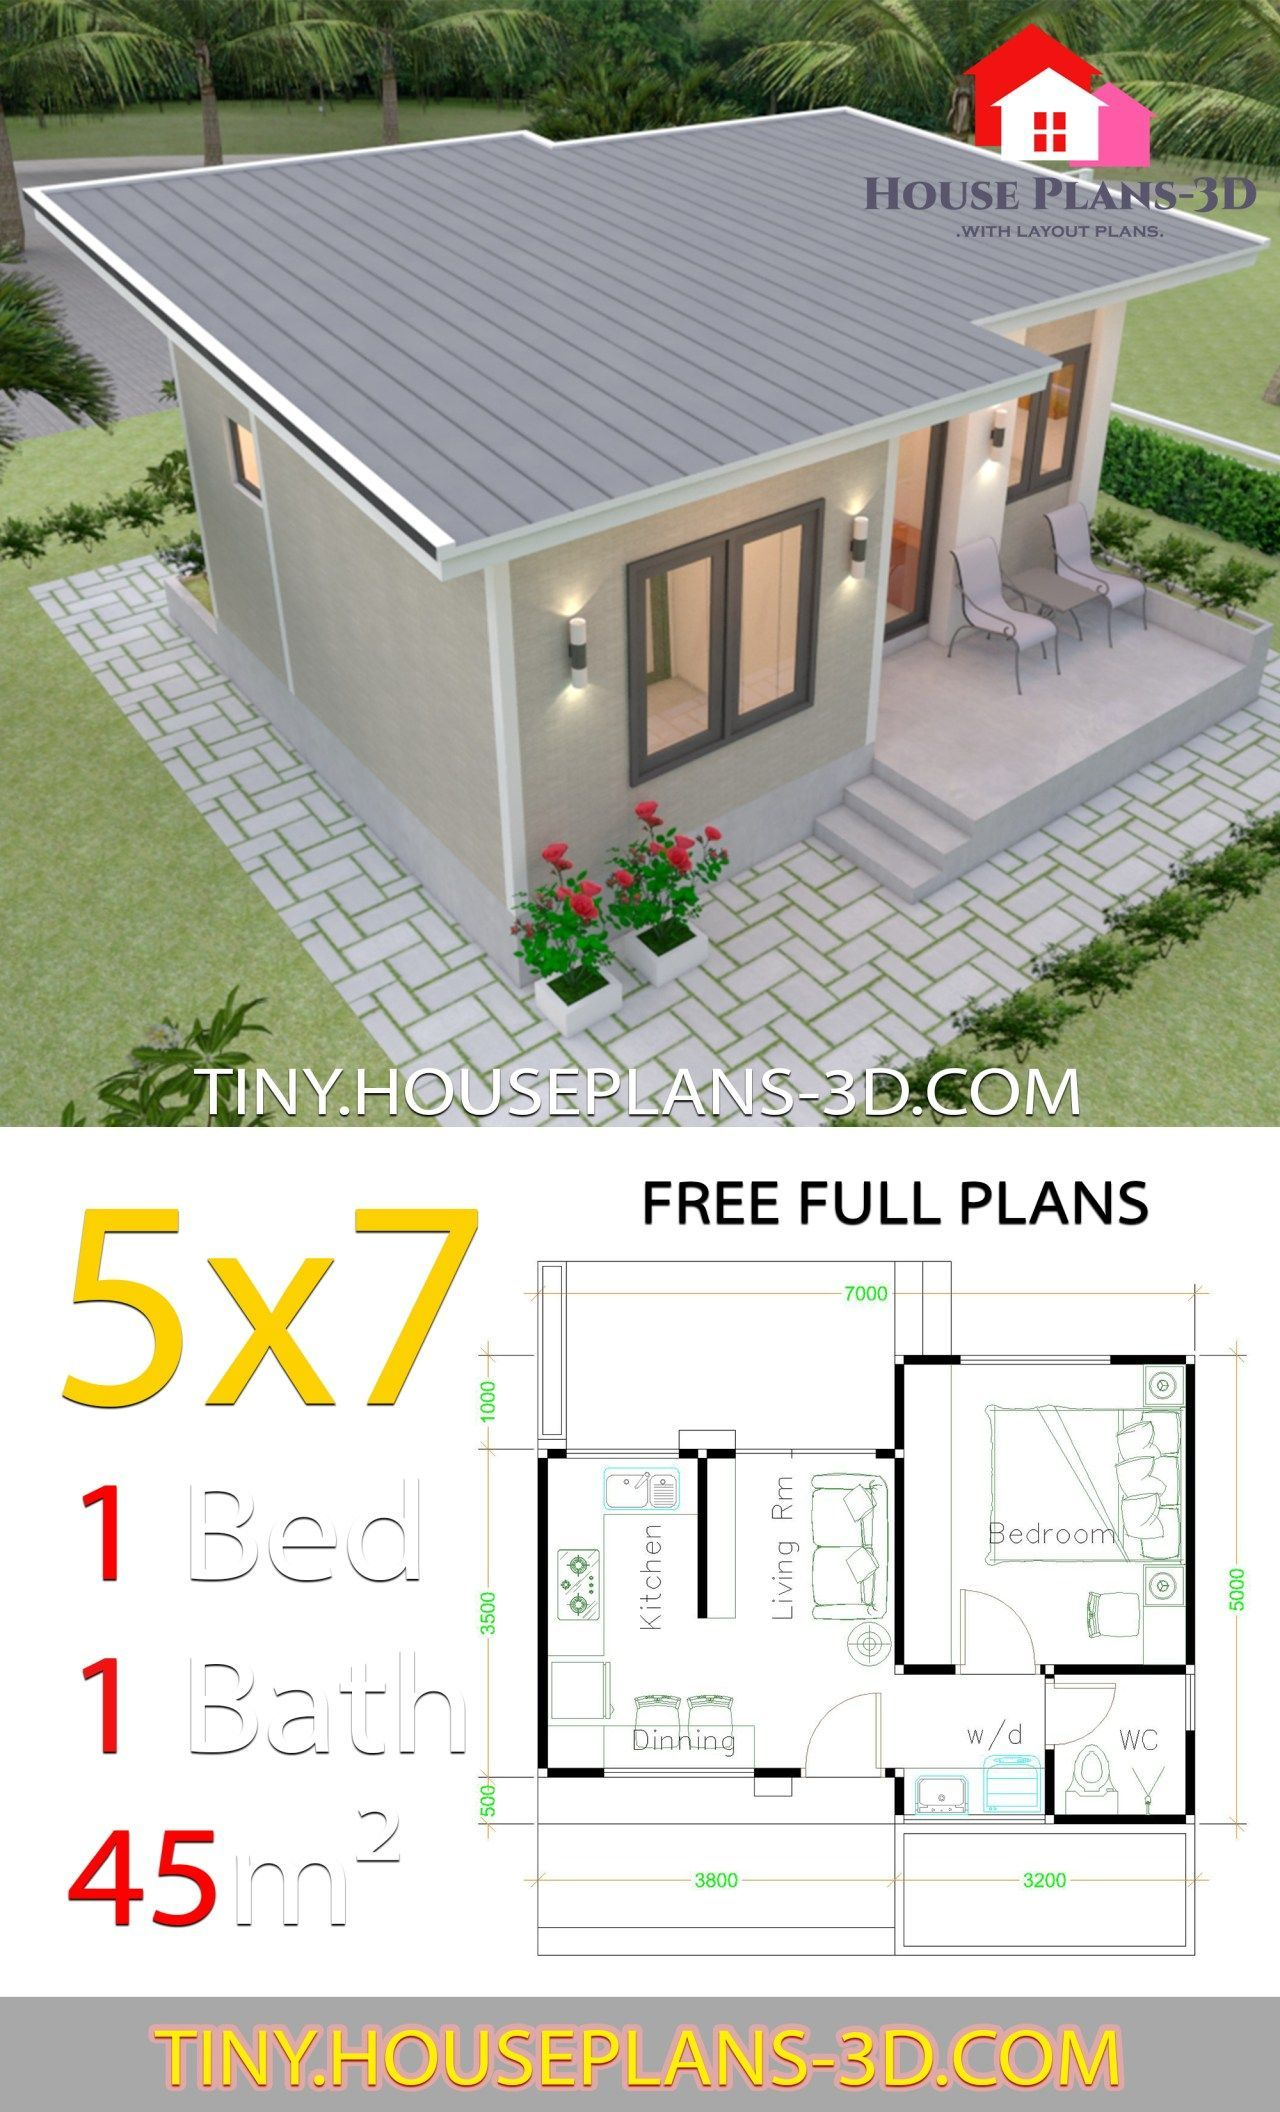 Small House Design Plans 5x7 With One Bedroom Shed Roof In Small House Design Plans Small House Design Philippines Affordable House Plans